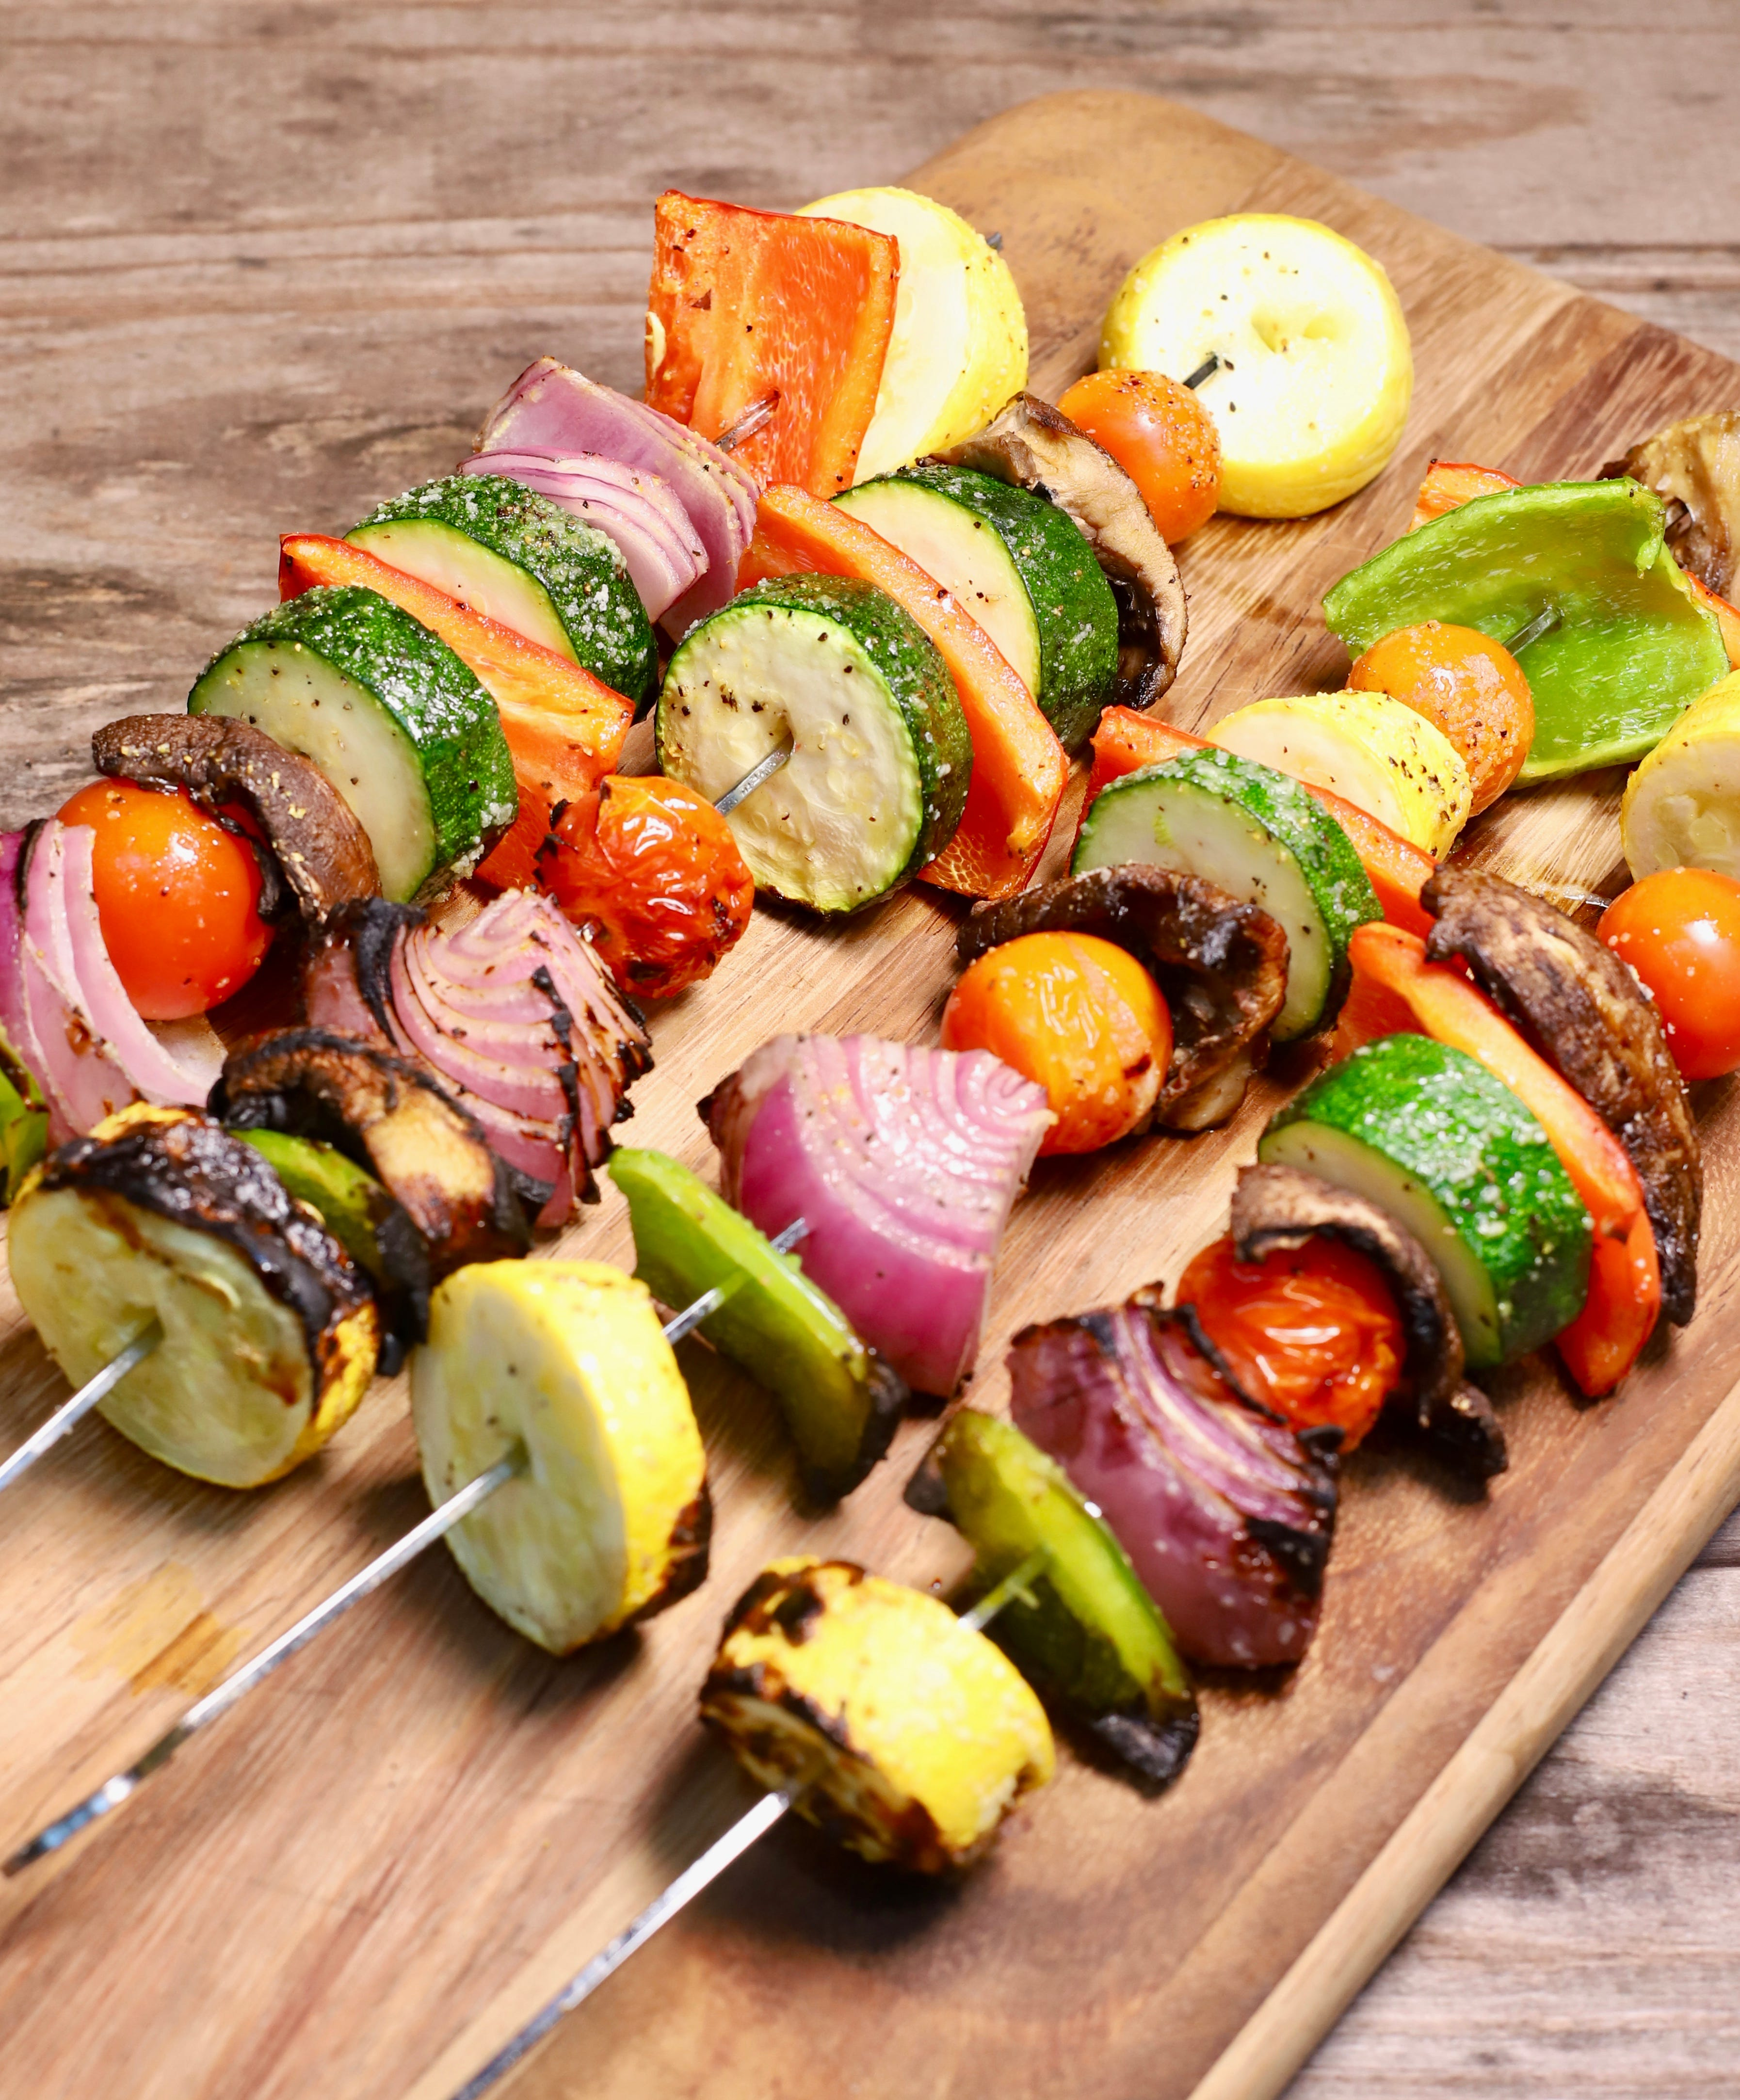 Veggie grill Kababs are king of caramelized flavor